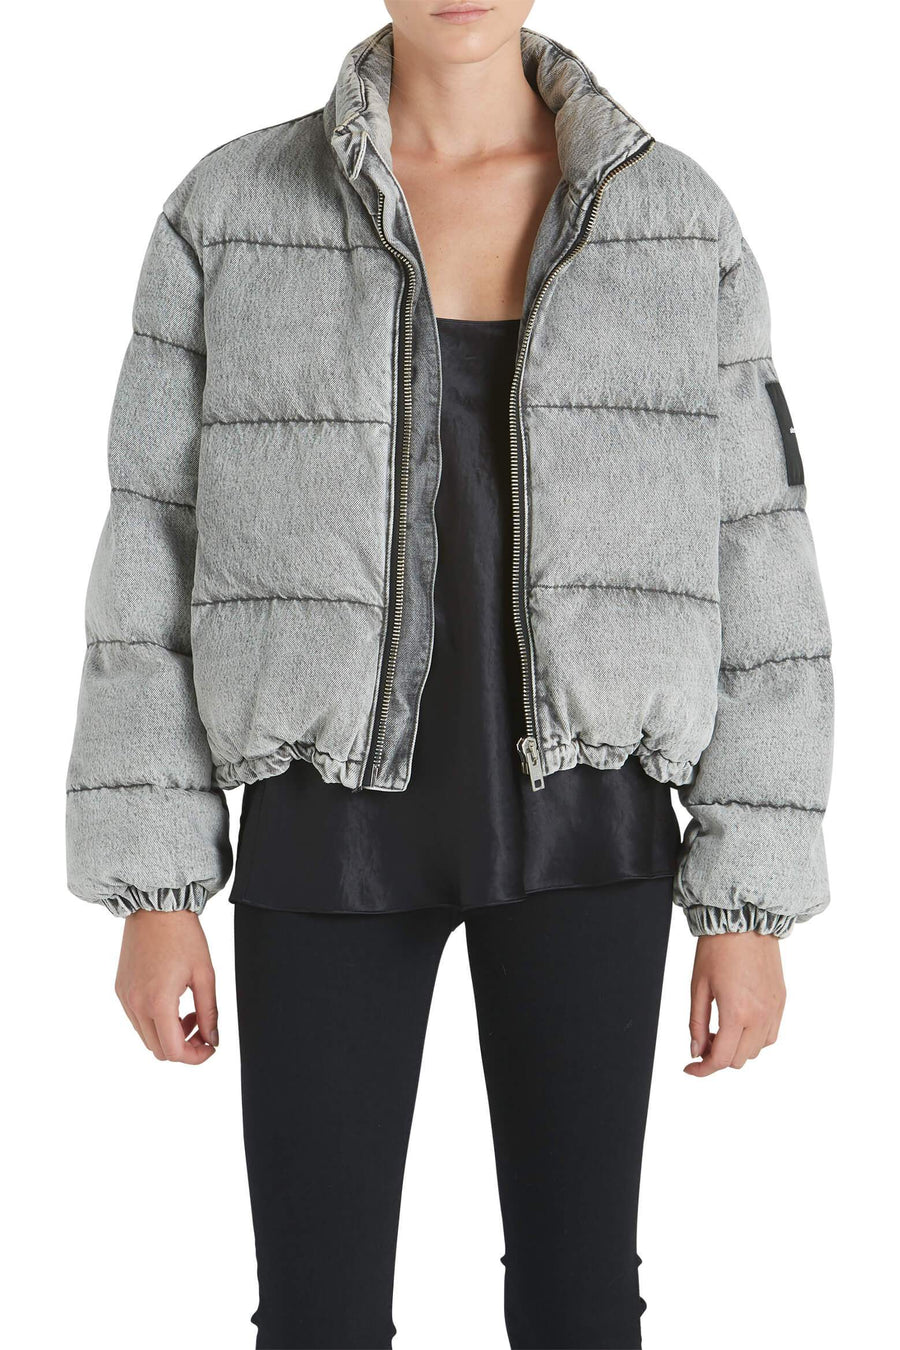 Alexander Wang Puffer Jacket in Light Grey from The New Trend